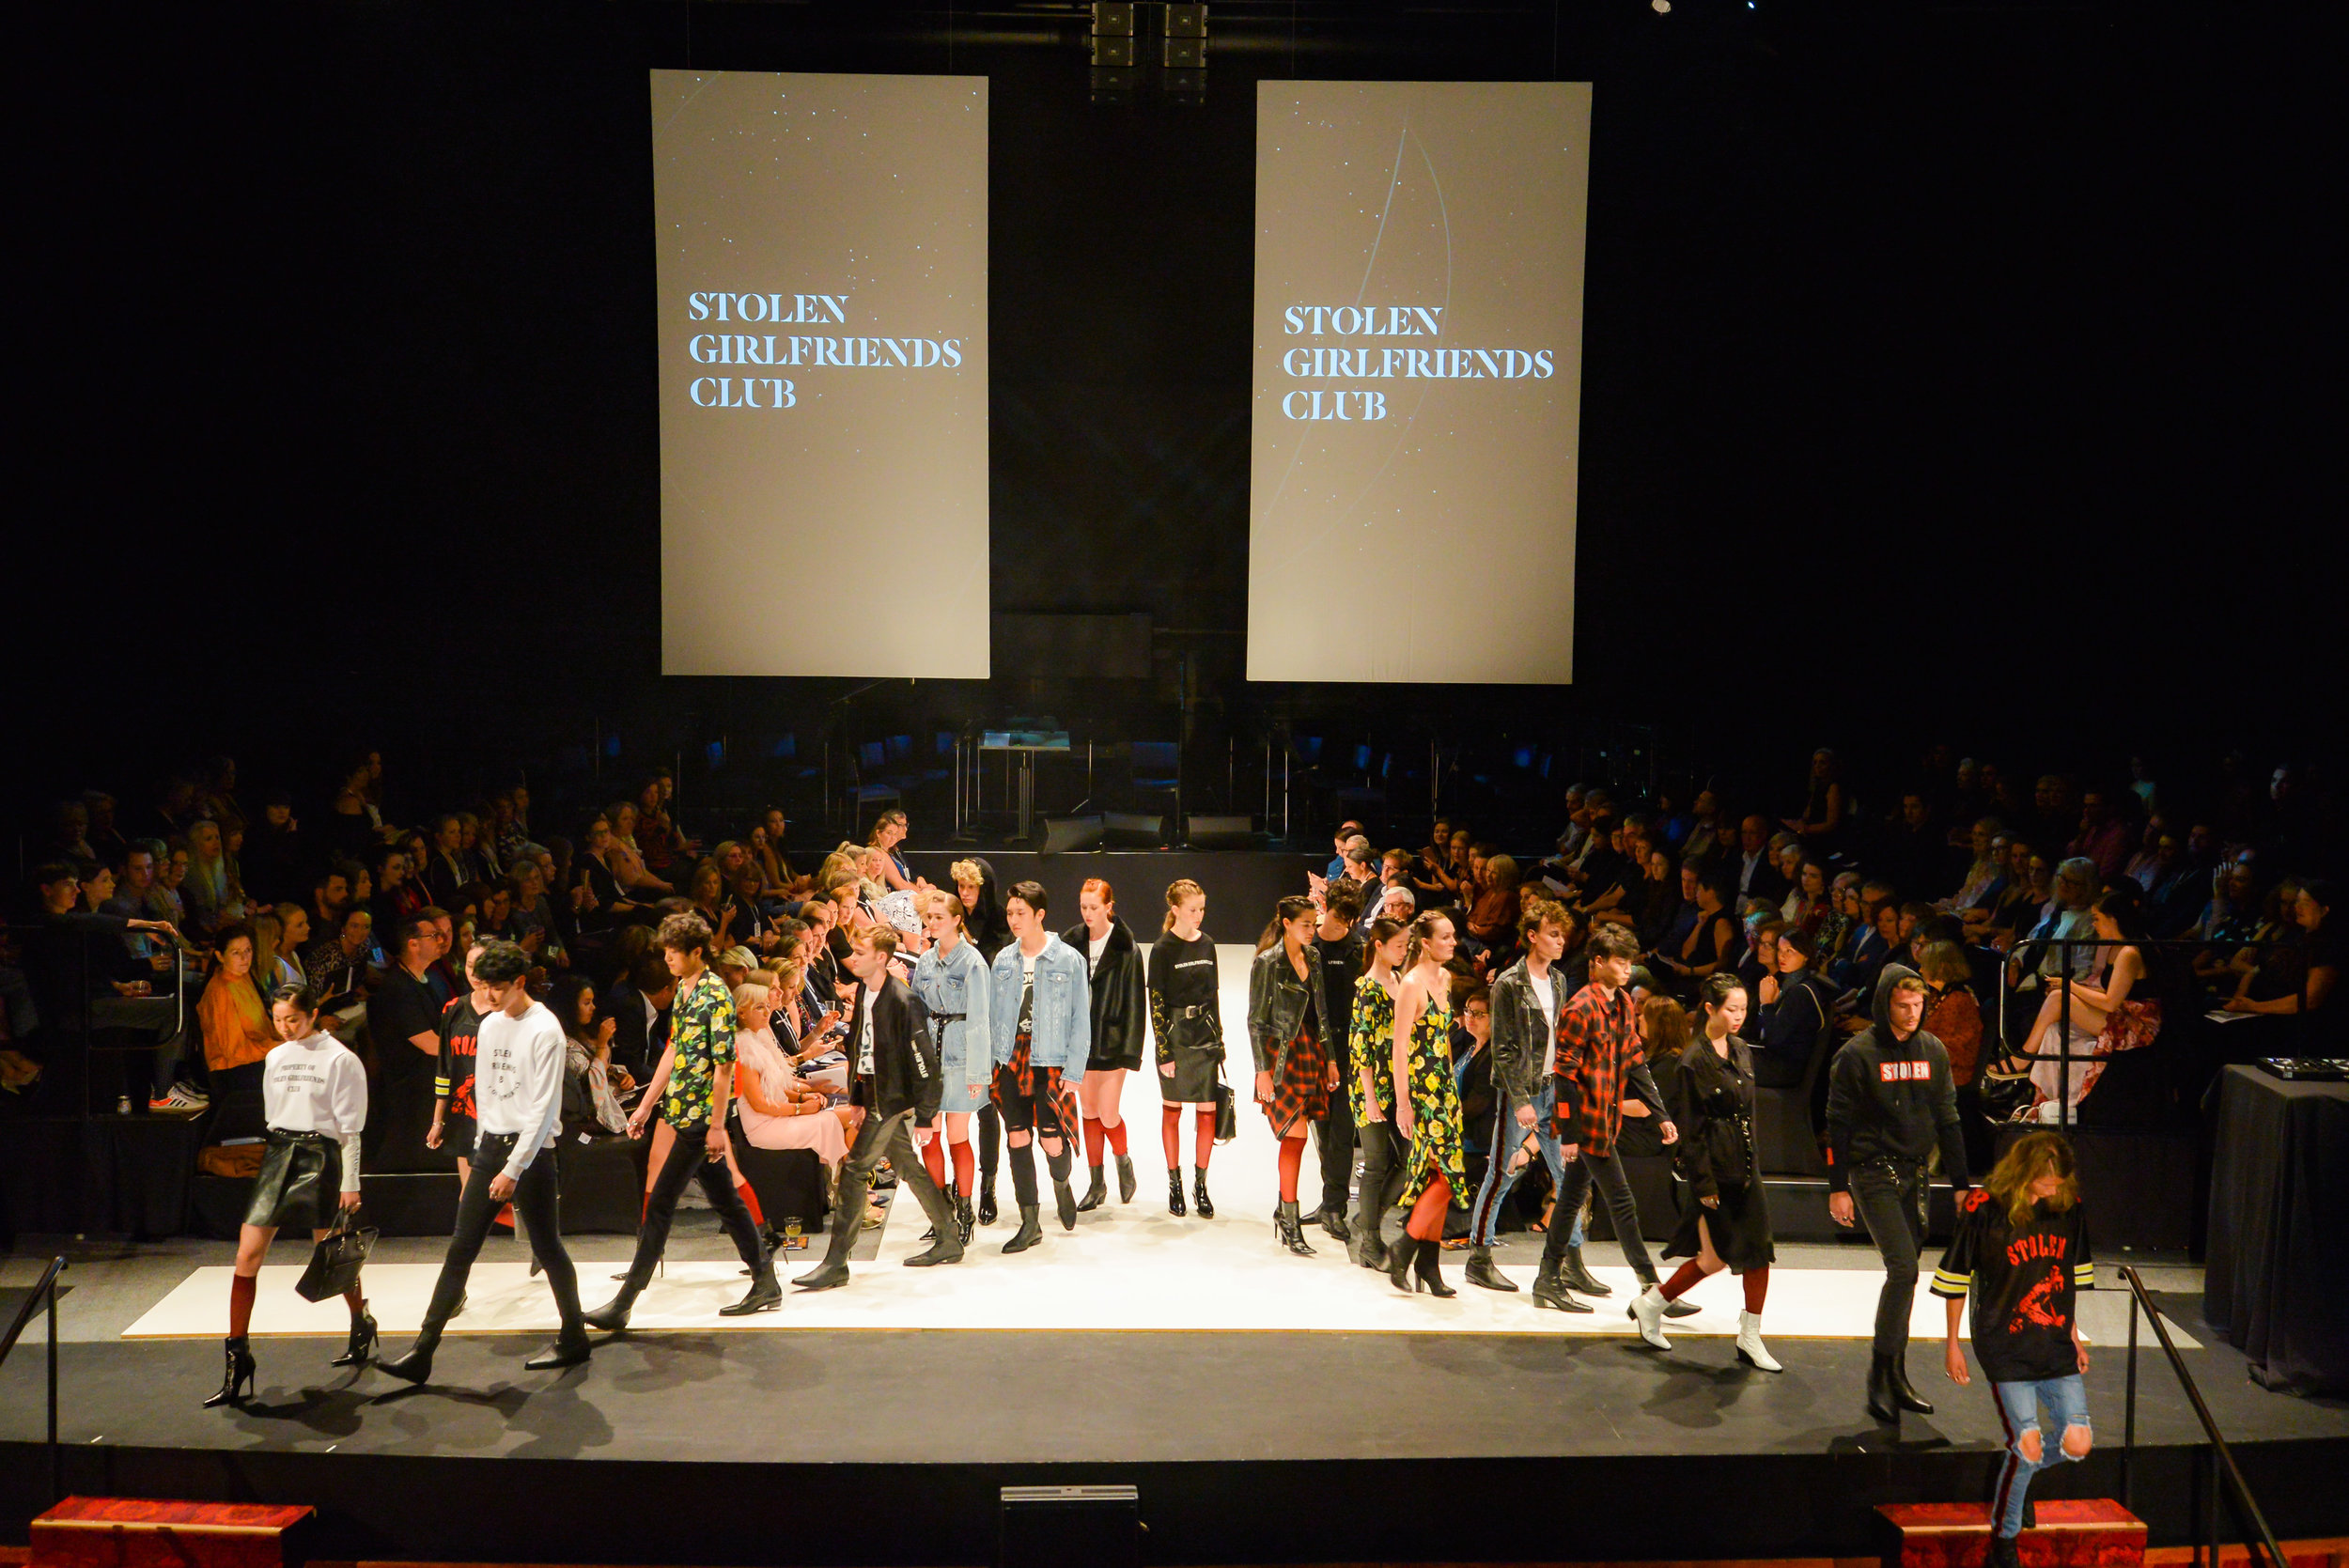 Stolen Girlfriends Club show their current collection in celebration of 20 years of iD. Photo: Chris Sullivan.